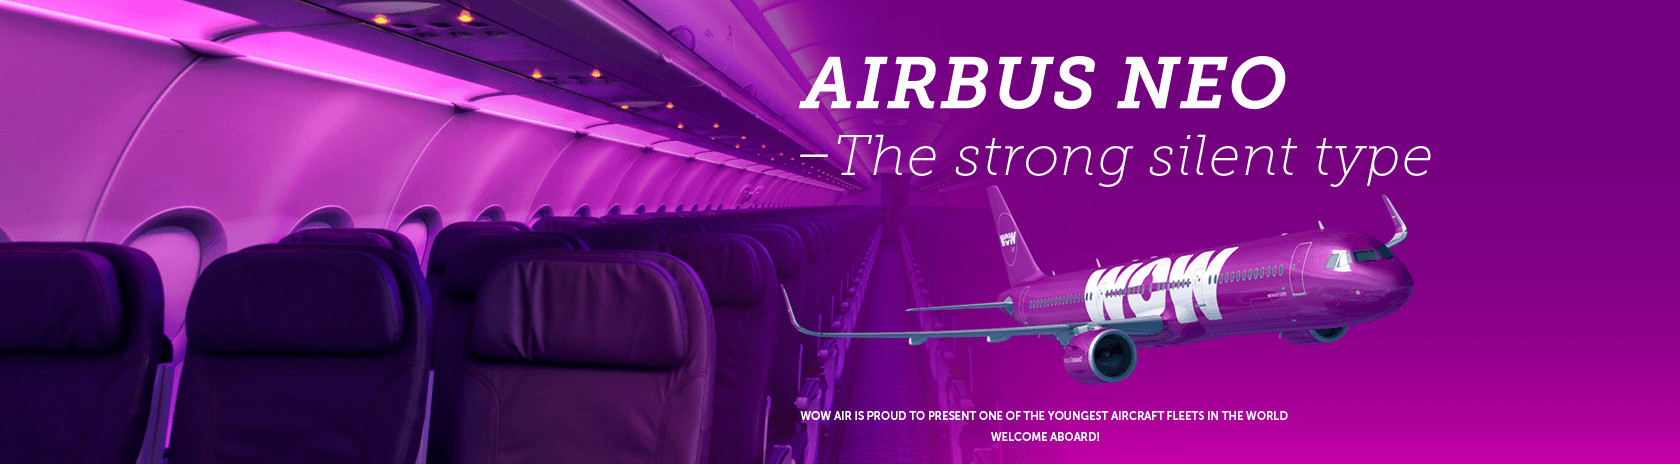 WOW Air Intro OW Fares on Flights  JFK to Europe for $149 or Iceland $99 (travel April-June)